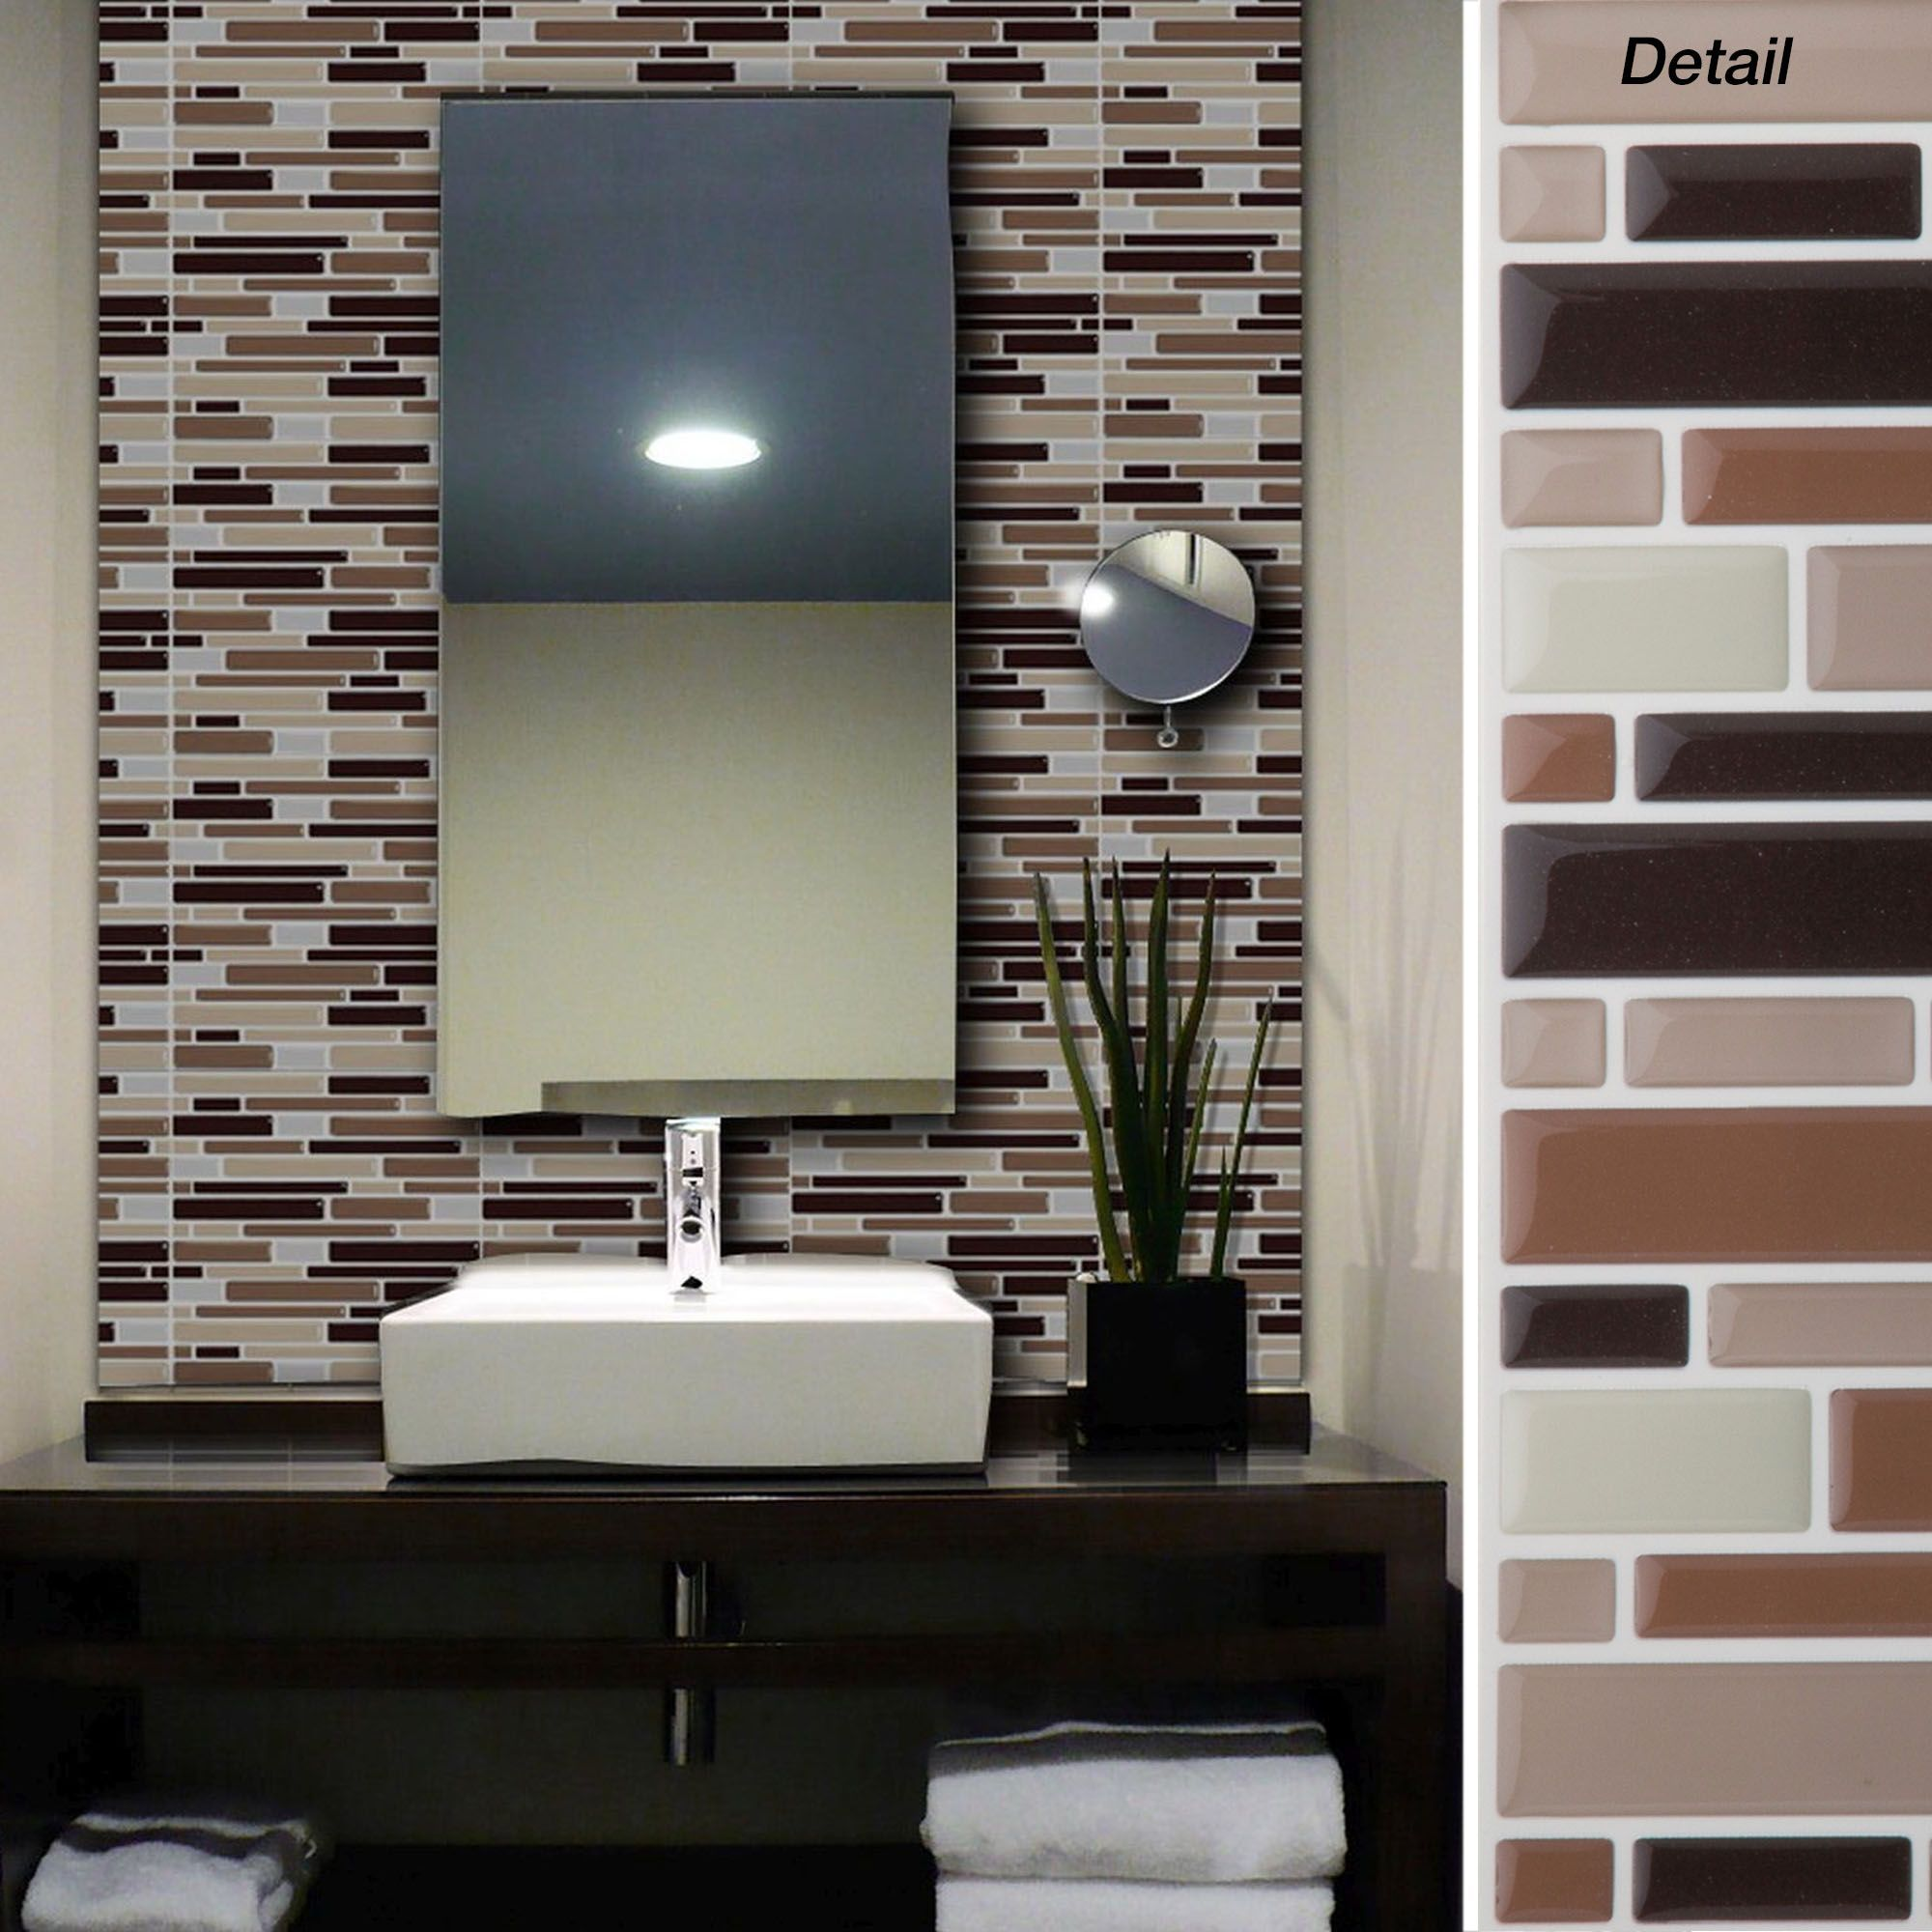 Peel and stick wall tiles bathroom - Self Adhesive Glass Wall Tiles Jc Designs